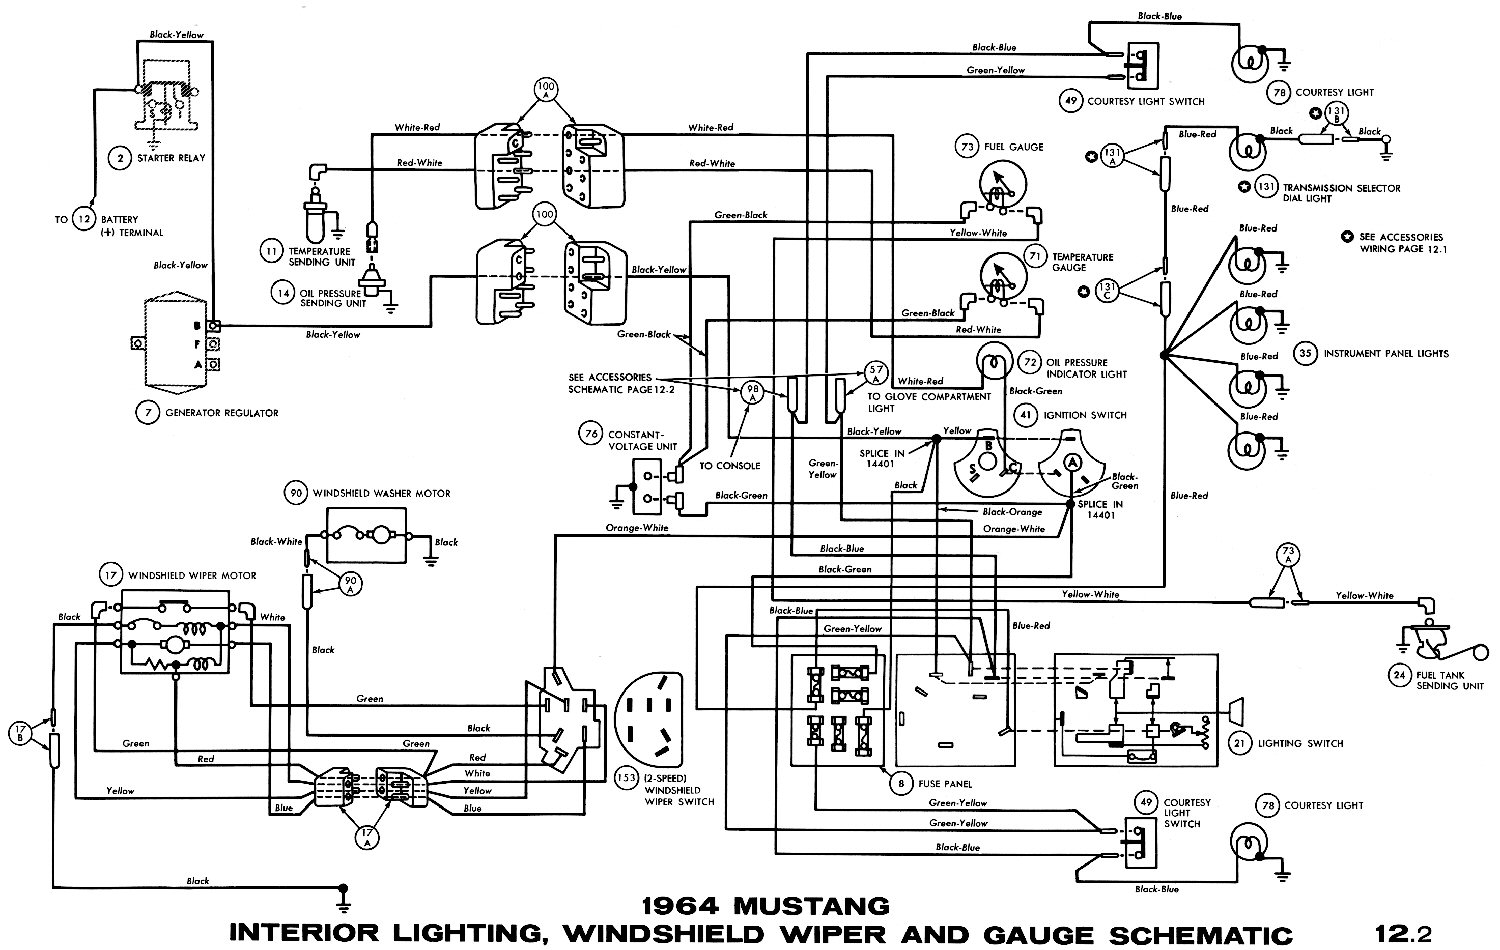 1964k 1964 mustang wiring diagrams average joe restoration 1984 mustang wiring diagram at alyssarenee.co